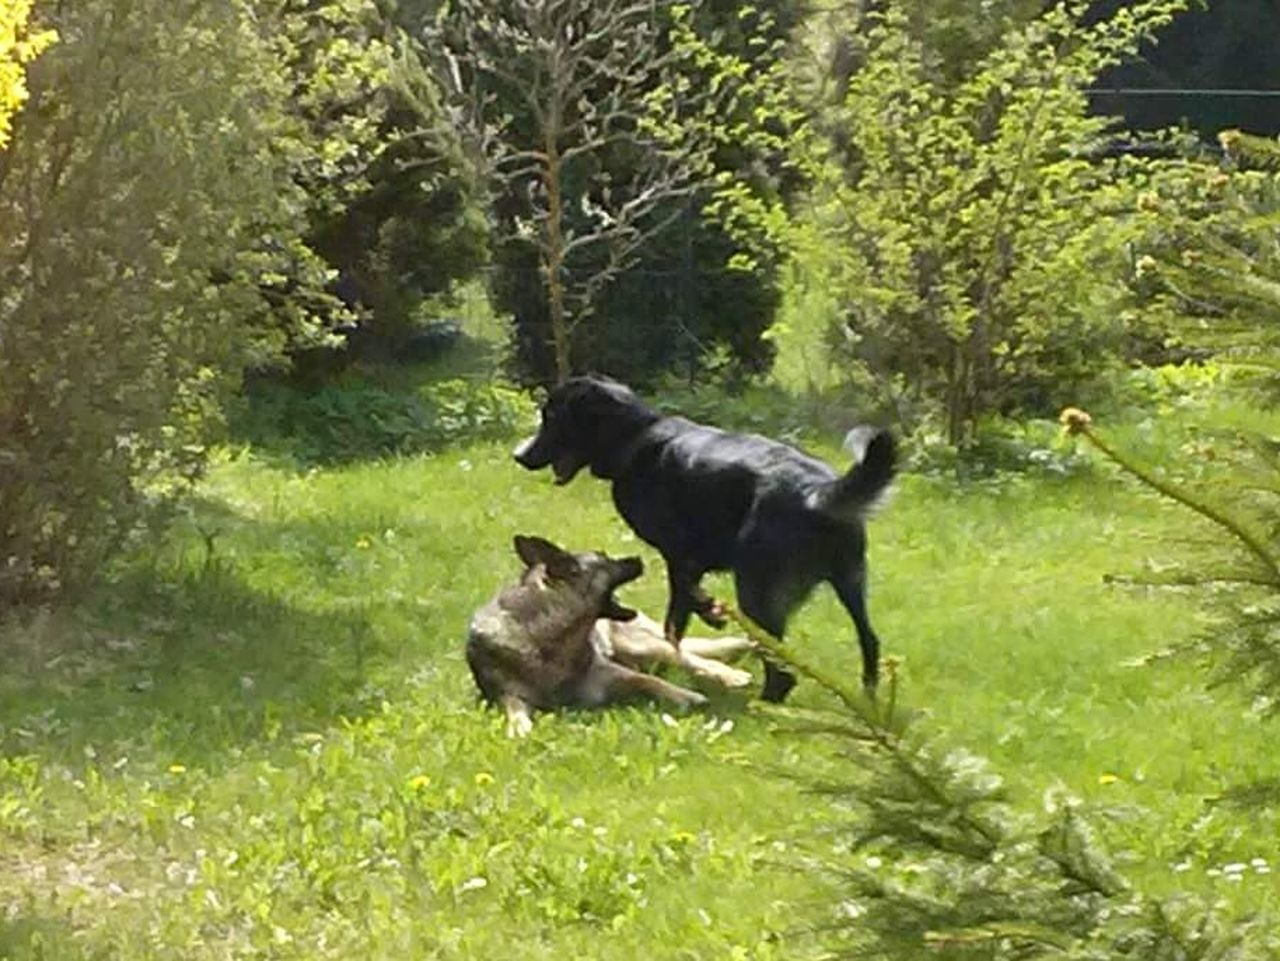 dog, animal, black labrador, plant, mammal, pets, outdoors, domestic animals, animal themes, nature, no people, black color, full length, one animal, jumping, labrador retriever, day, motion, plant part, grass, moose